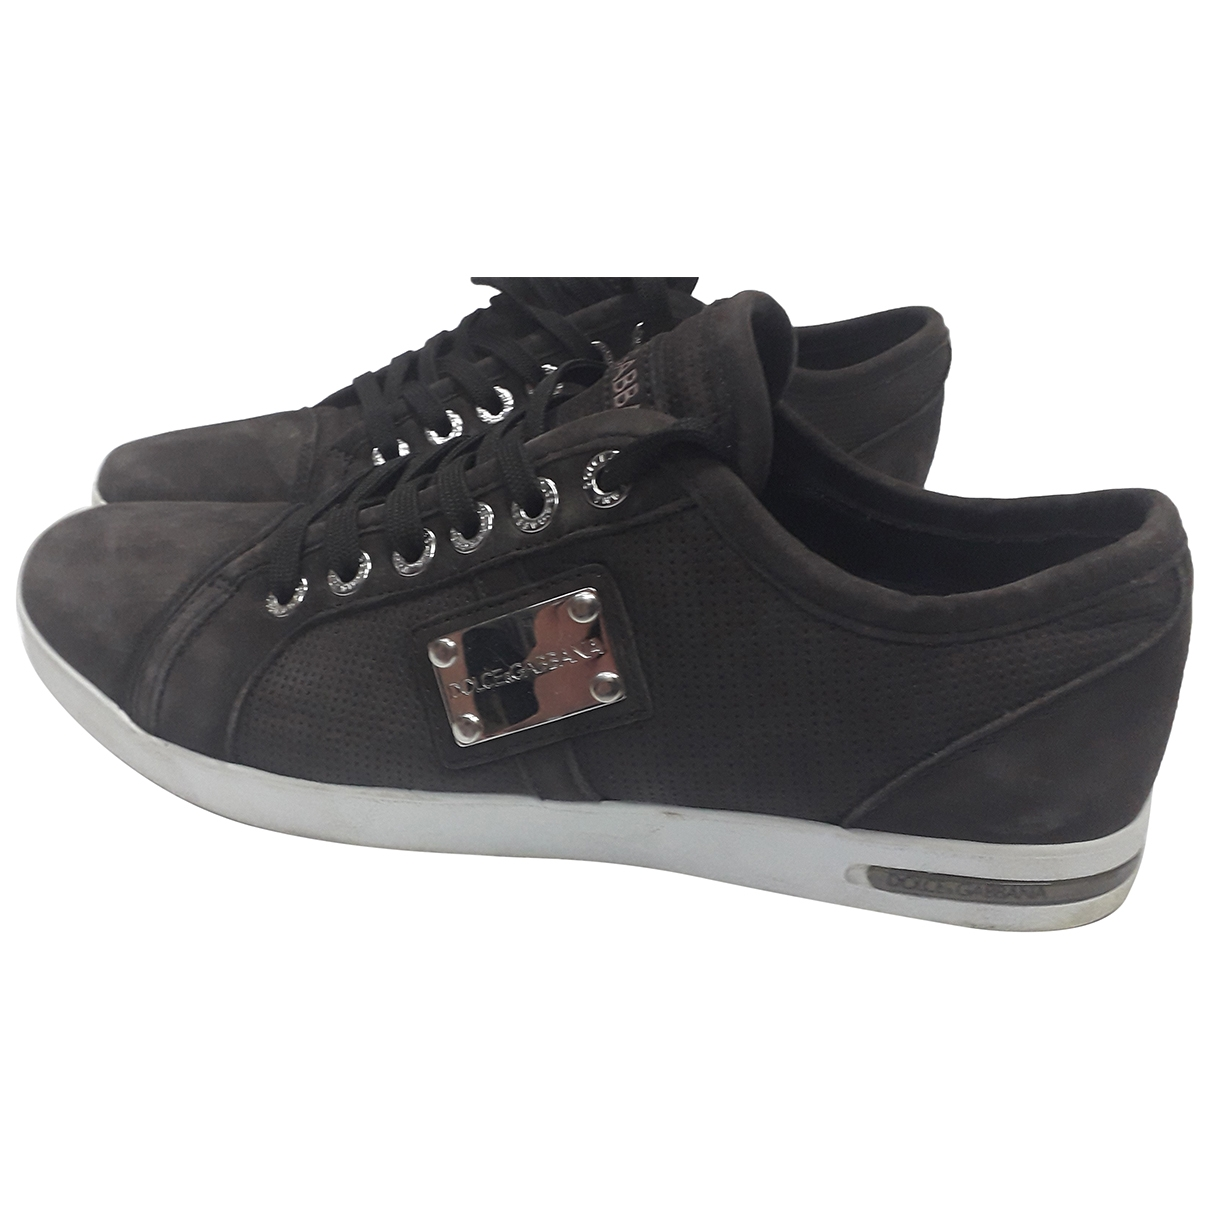 Dolce & Gabbana \N Anthracite Suede Trainers for Men 7.5 UK